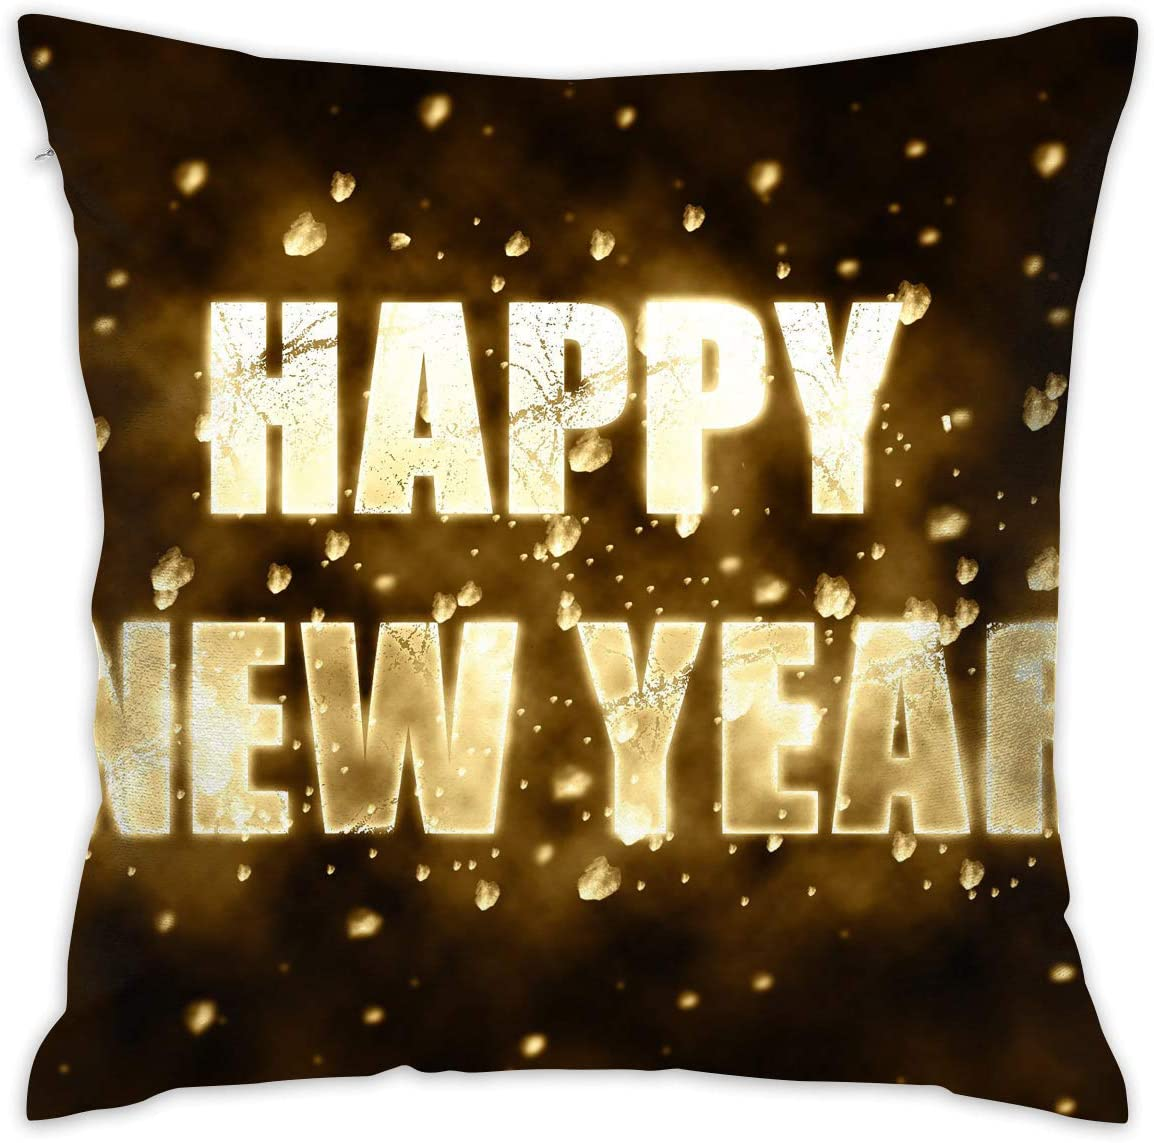 Karen Felix Throw Pillow Covers Gold Happy New Year Decorative Cushion Case for Sofa Bedroom Car 18 X 18 Inch 45 X 45 cm